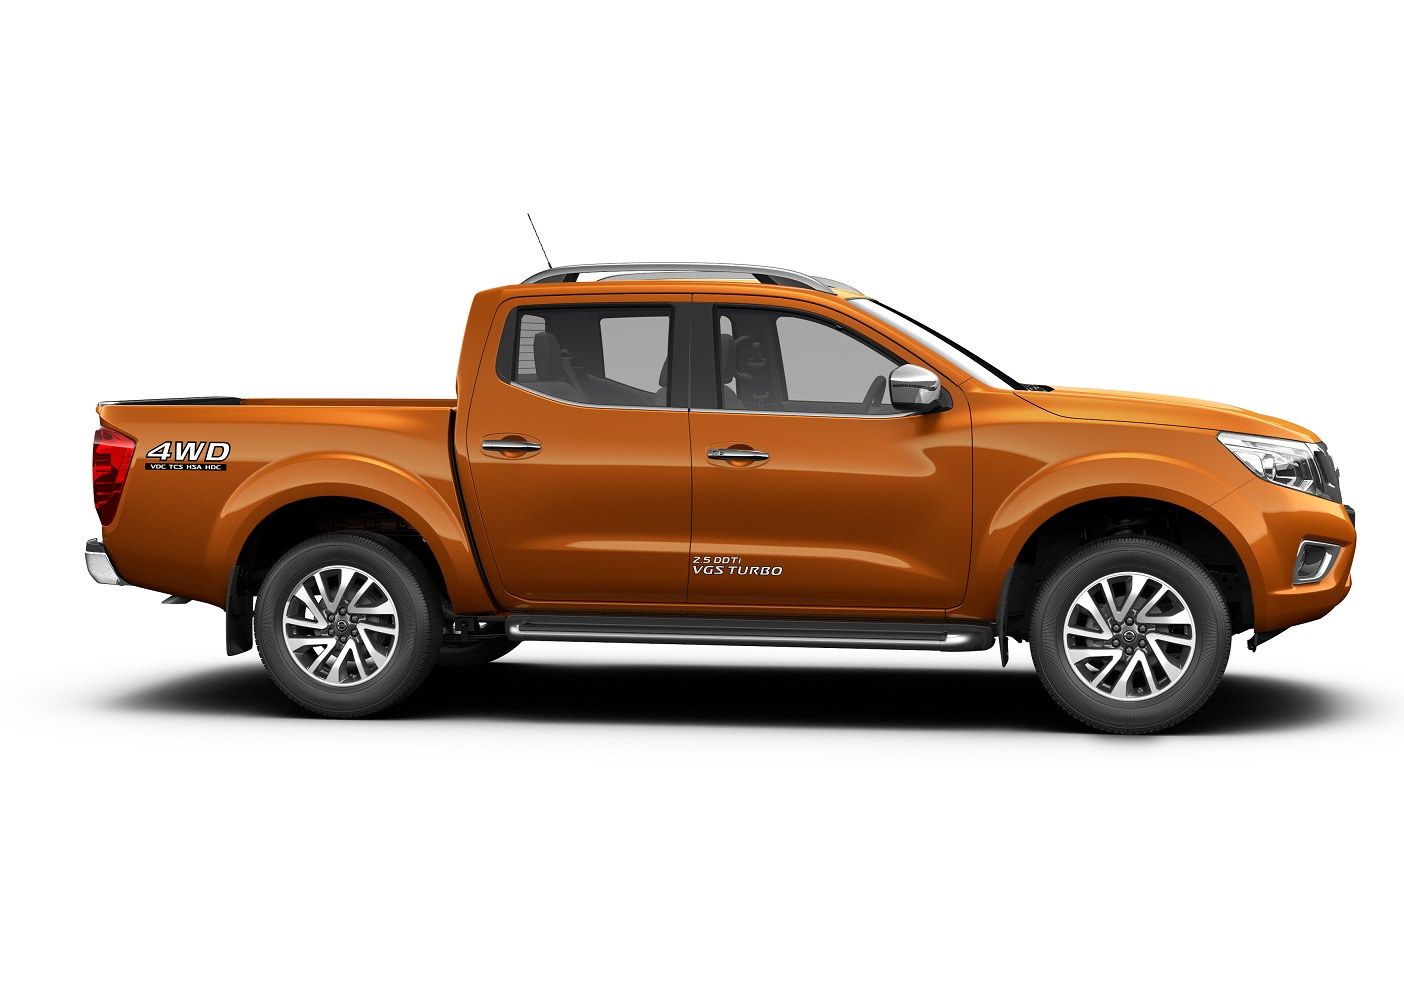 02 All-New NP300 Navara_Double Cab_Side